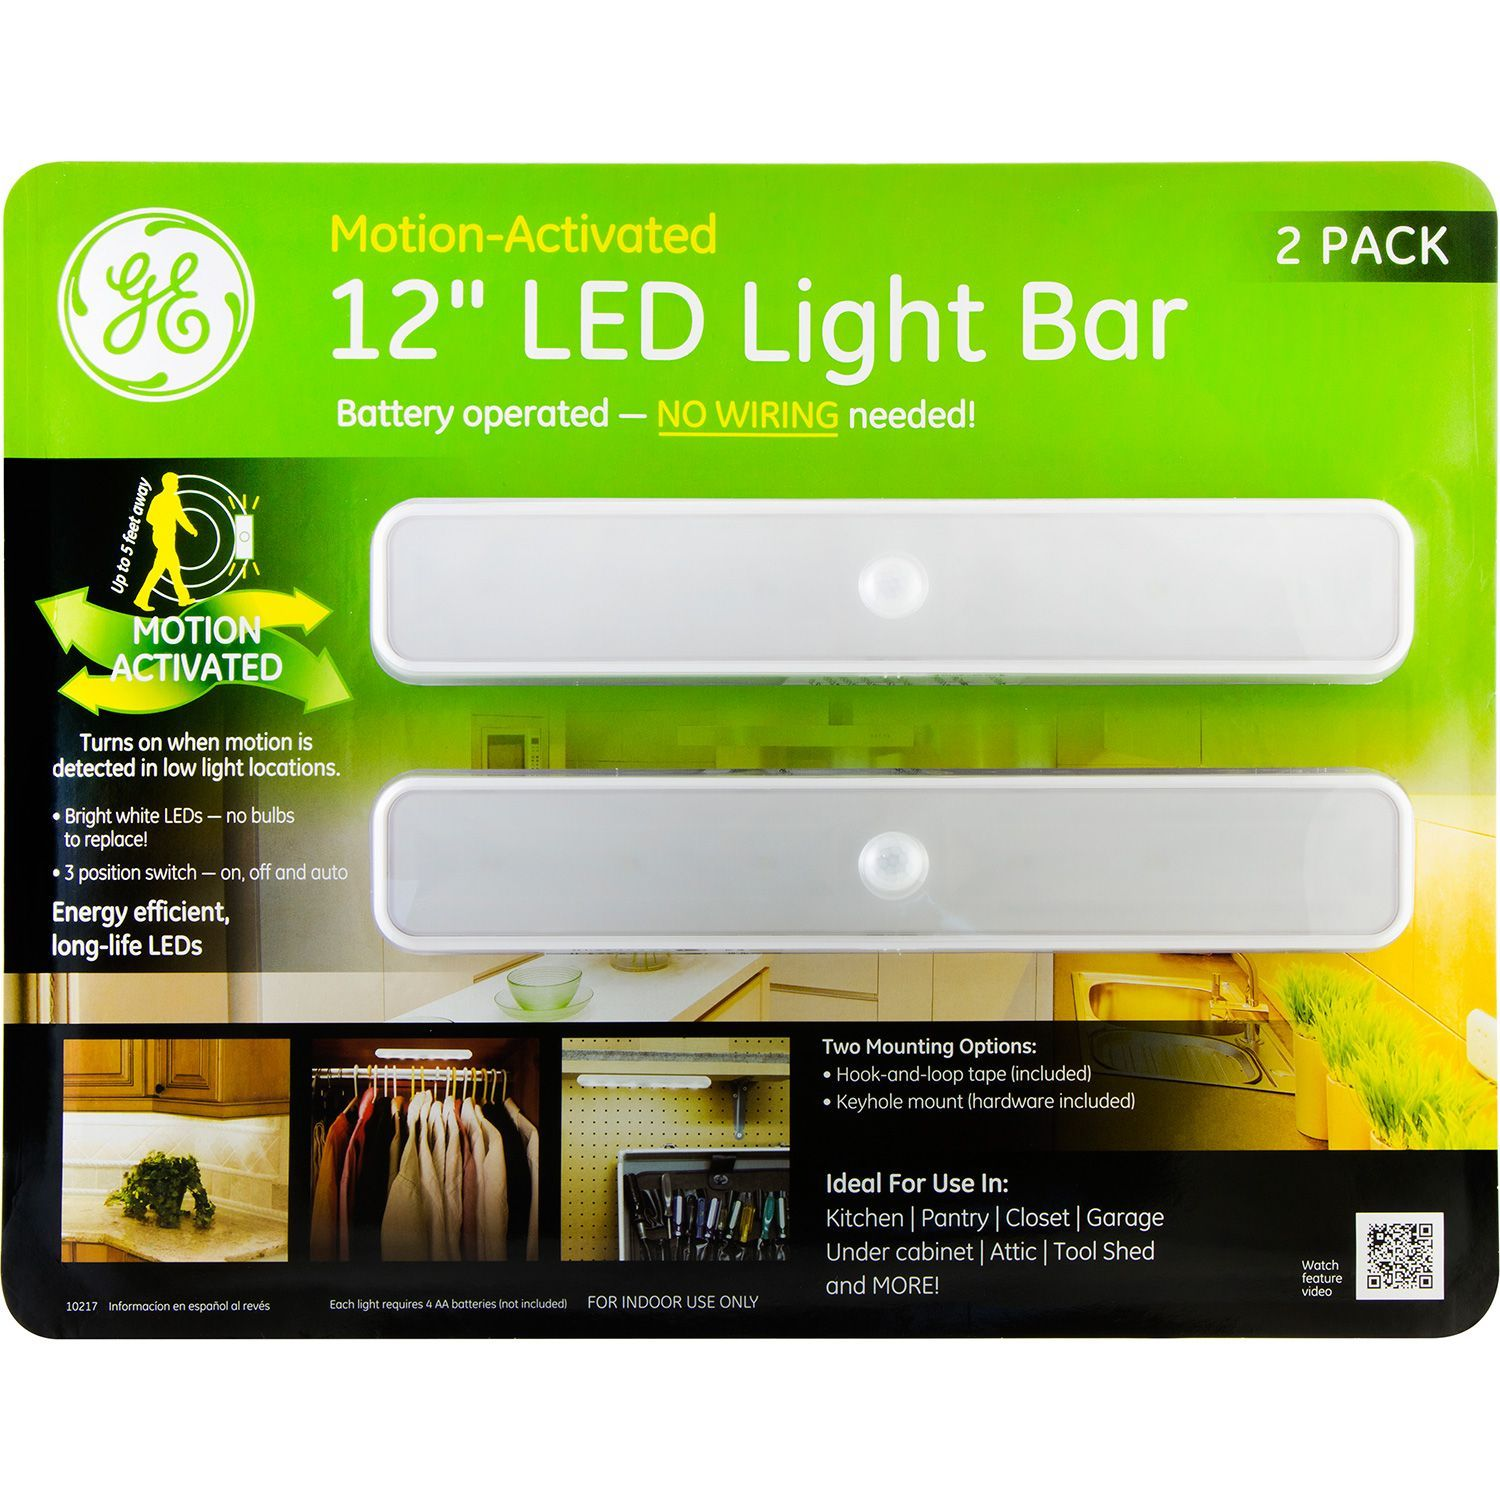 Ge Battery Operated Motion Activated 12 Inch Led Light Bars 2